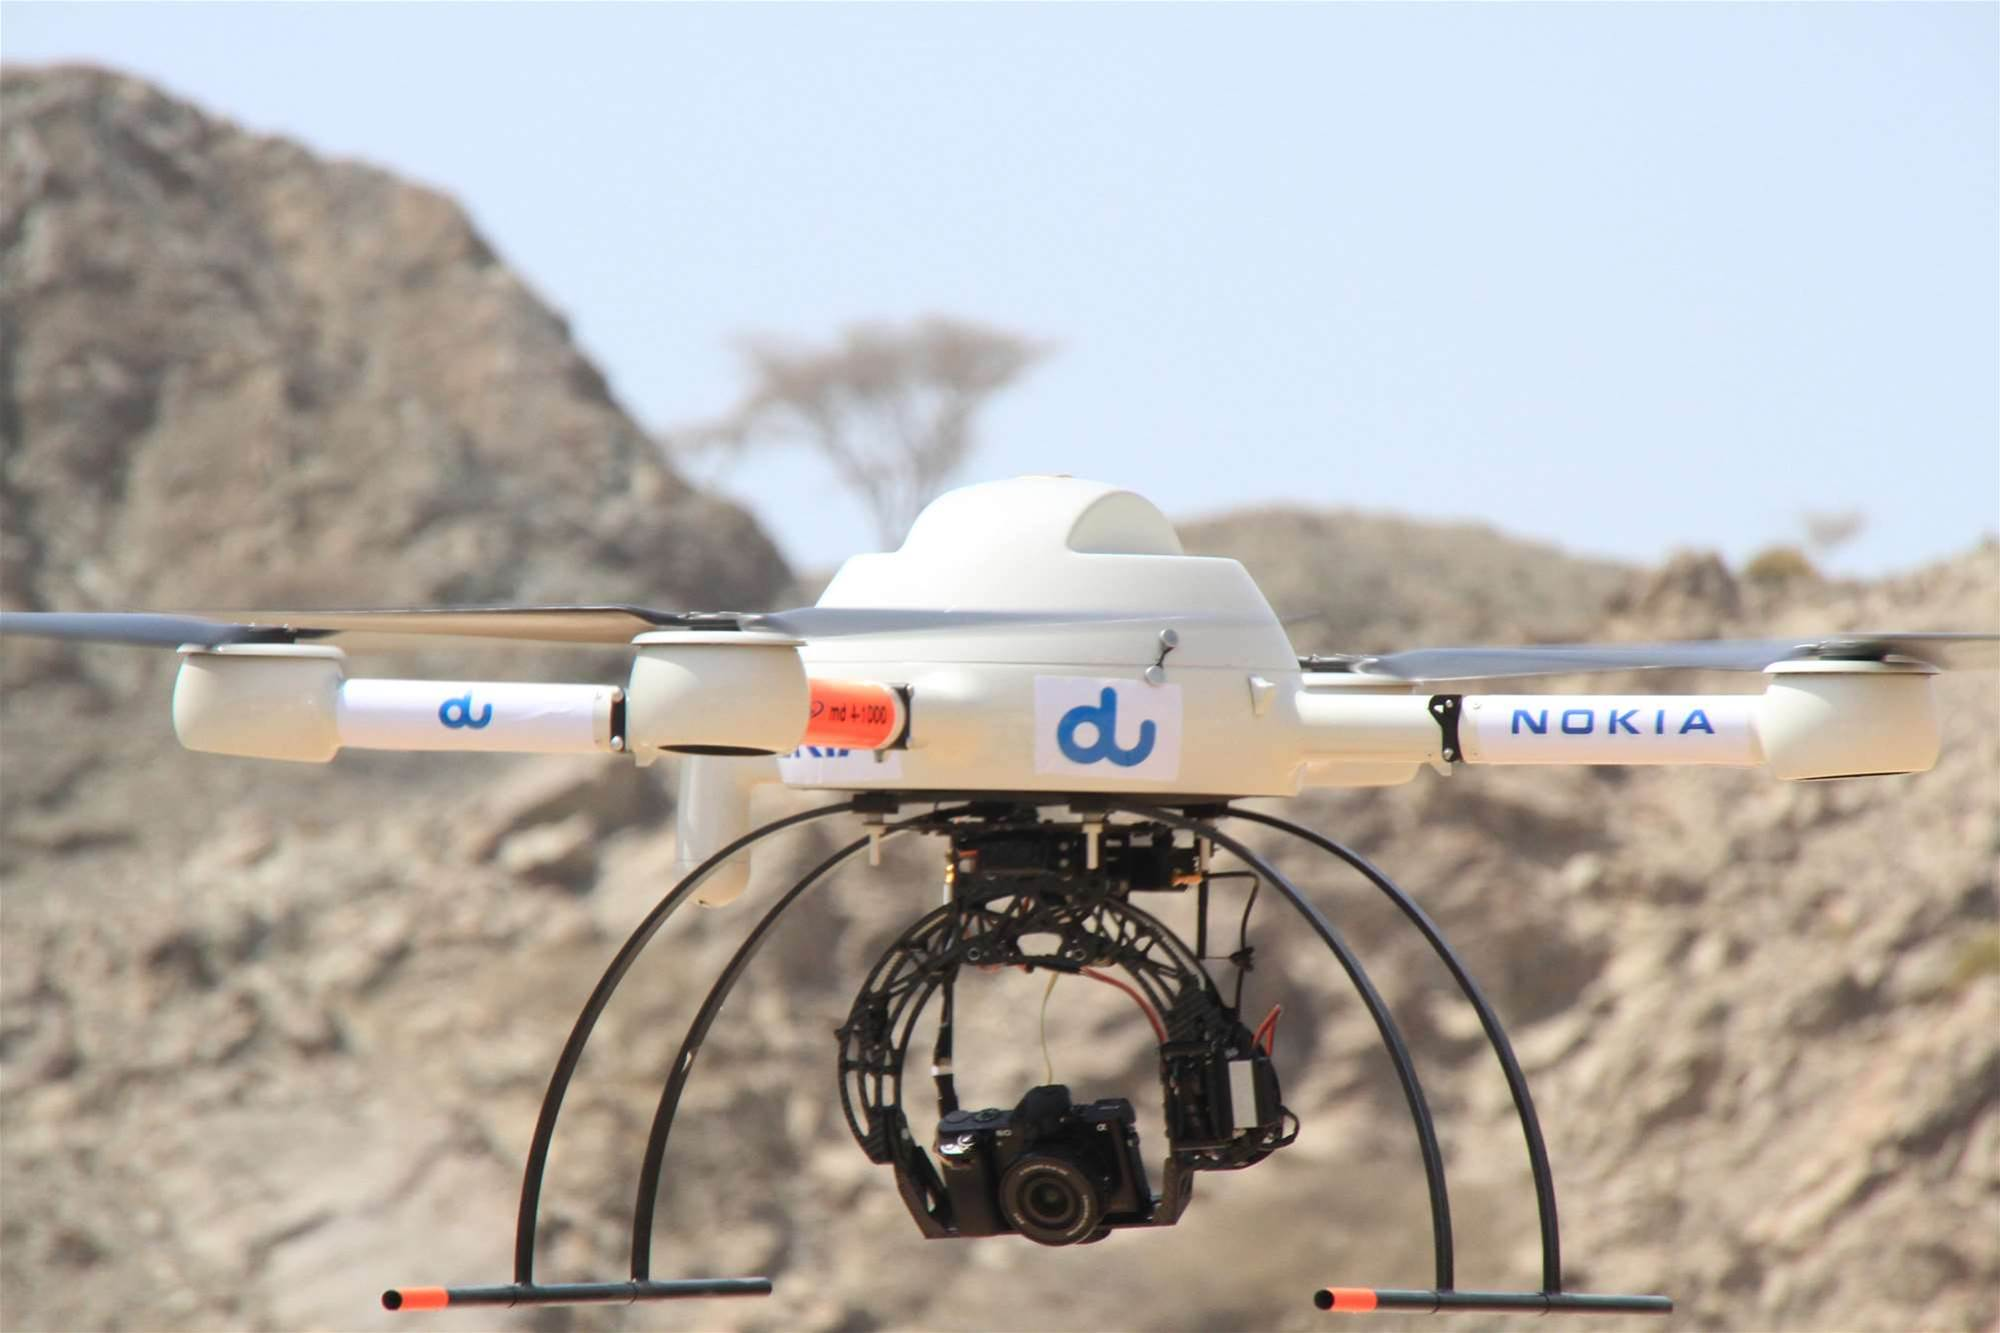 Nokia Networks testing drones for cell site optimisation